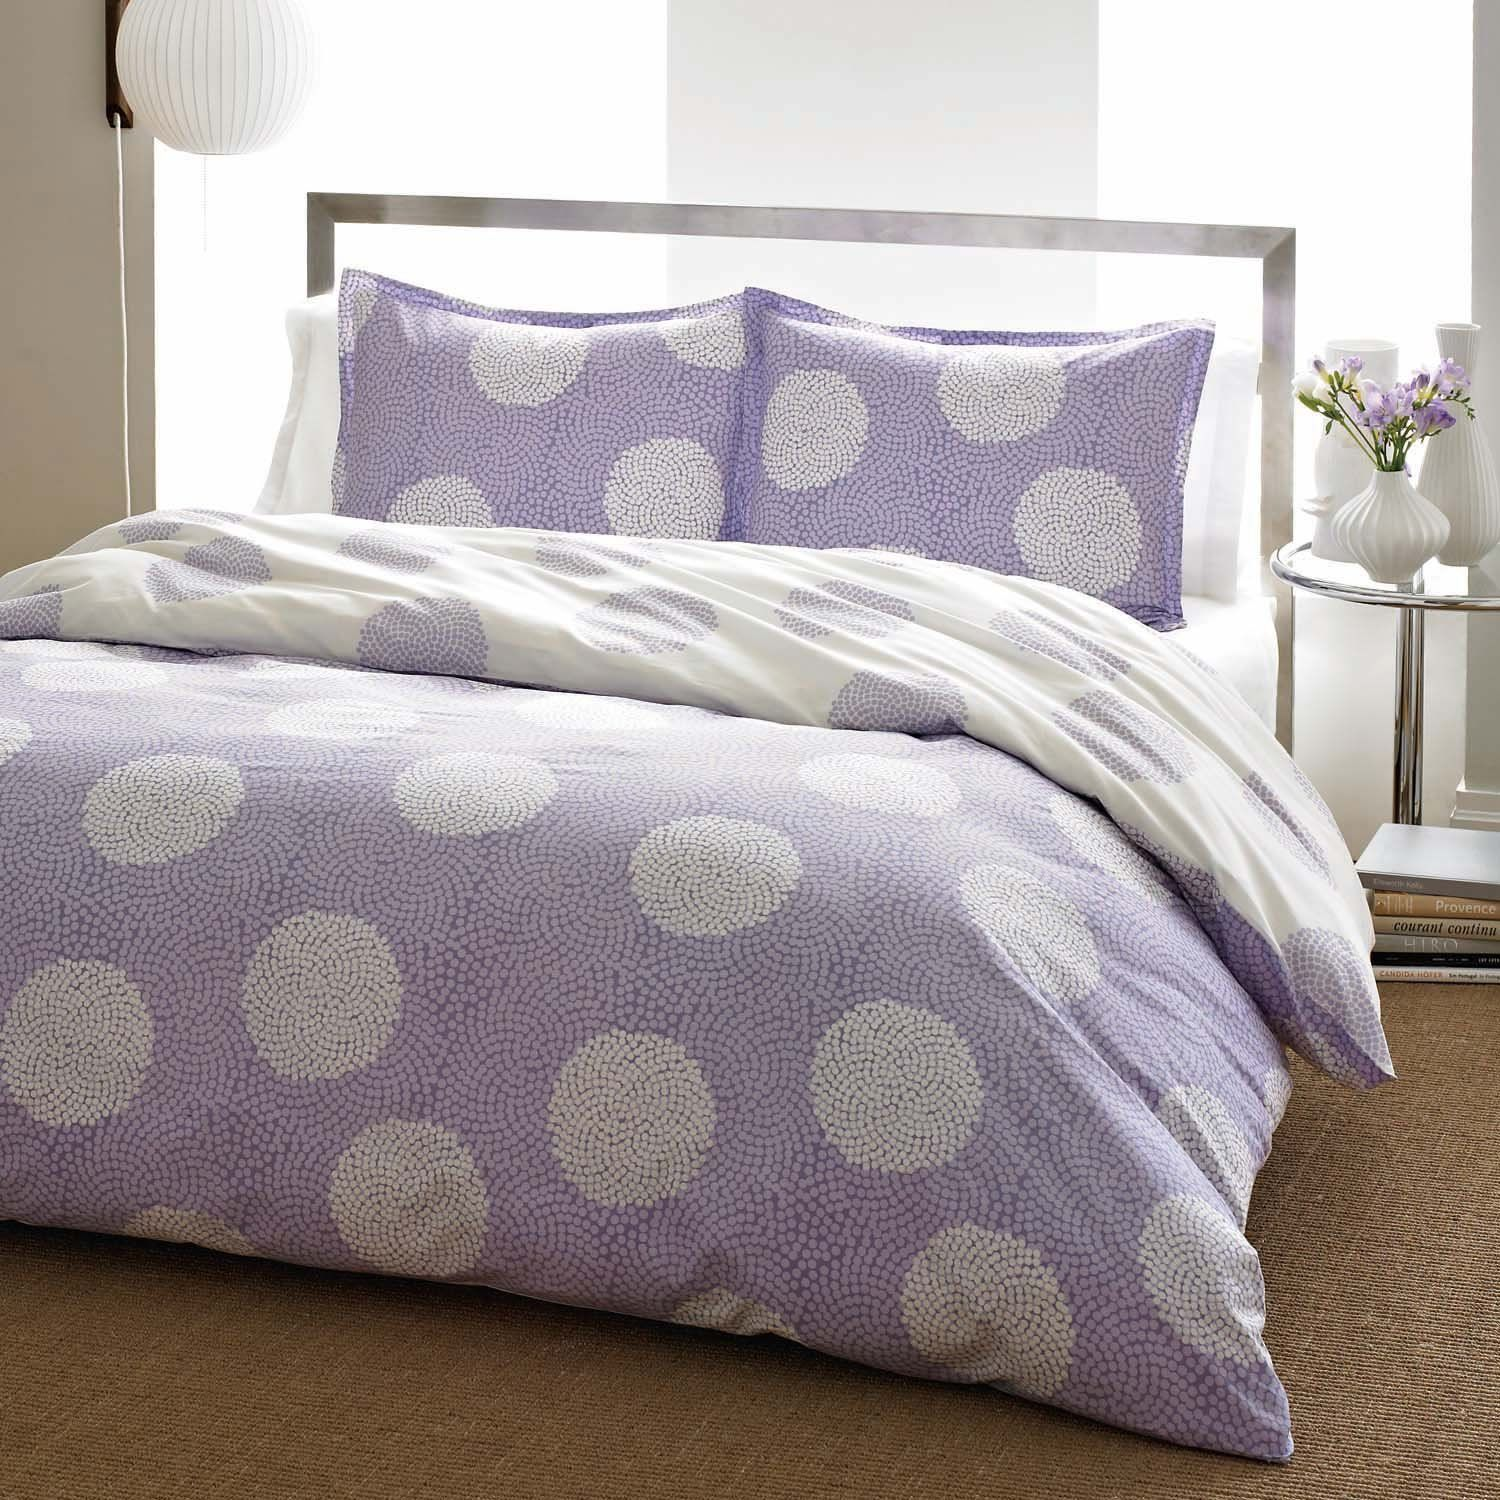 City scene raindance lavender duvet sham set lavender full queen